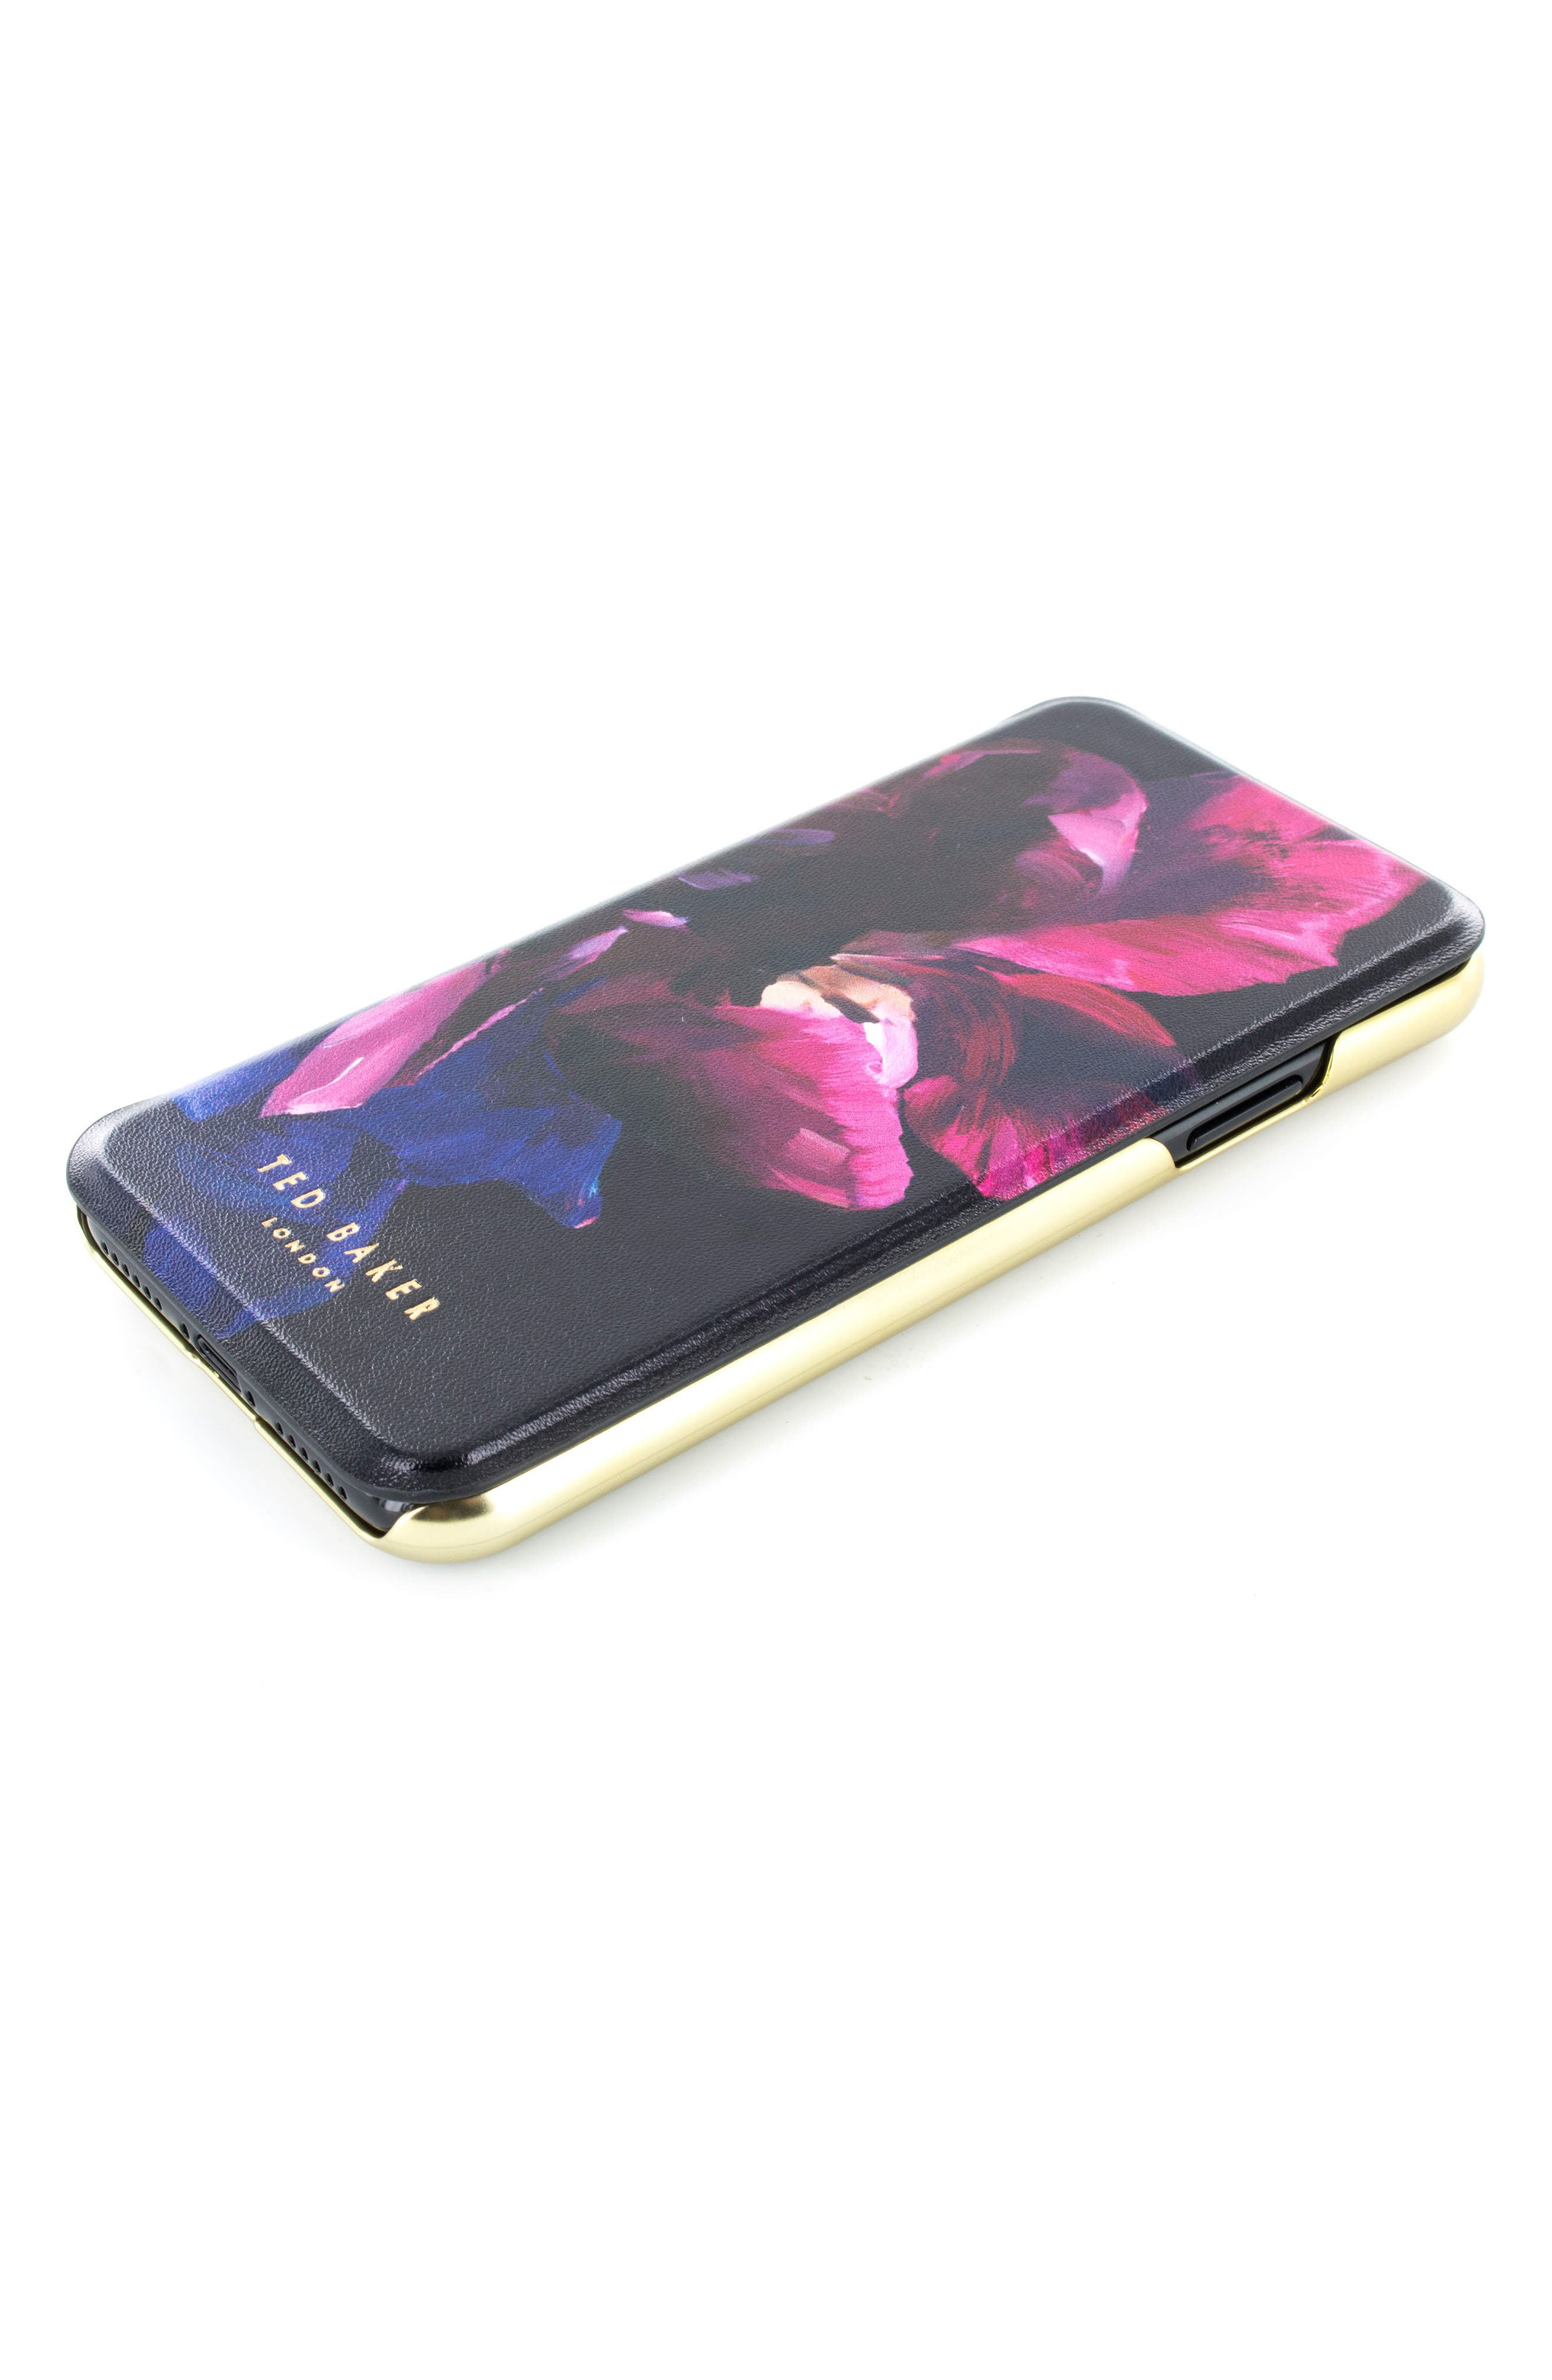 Ted Baker London Impressionist Bloom iPhone X Mirror Folio Case